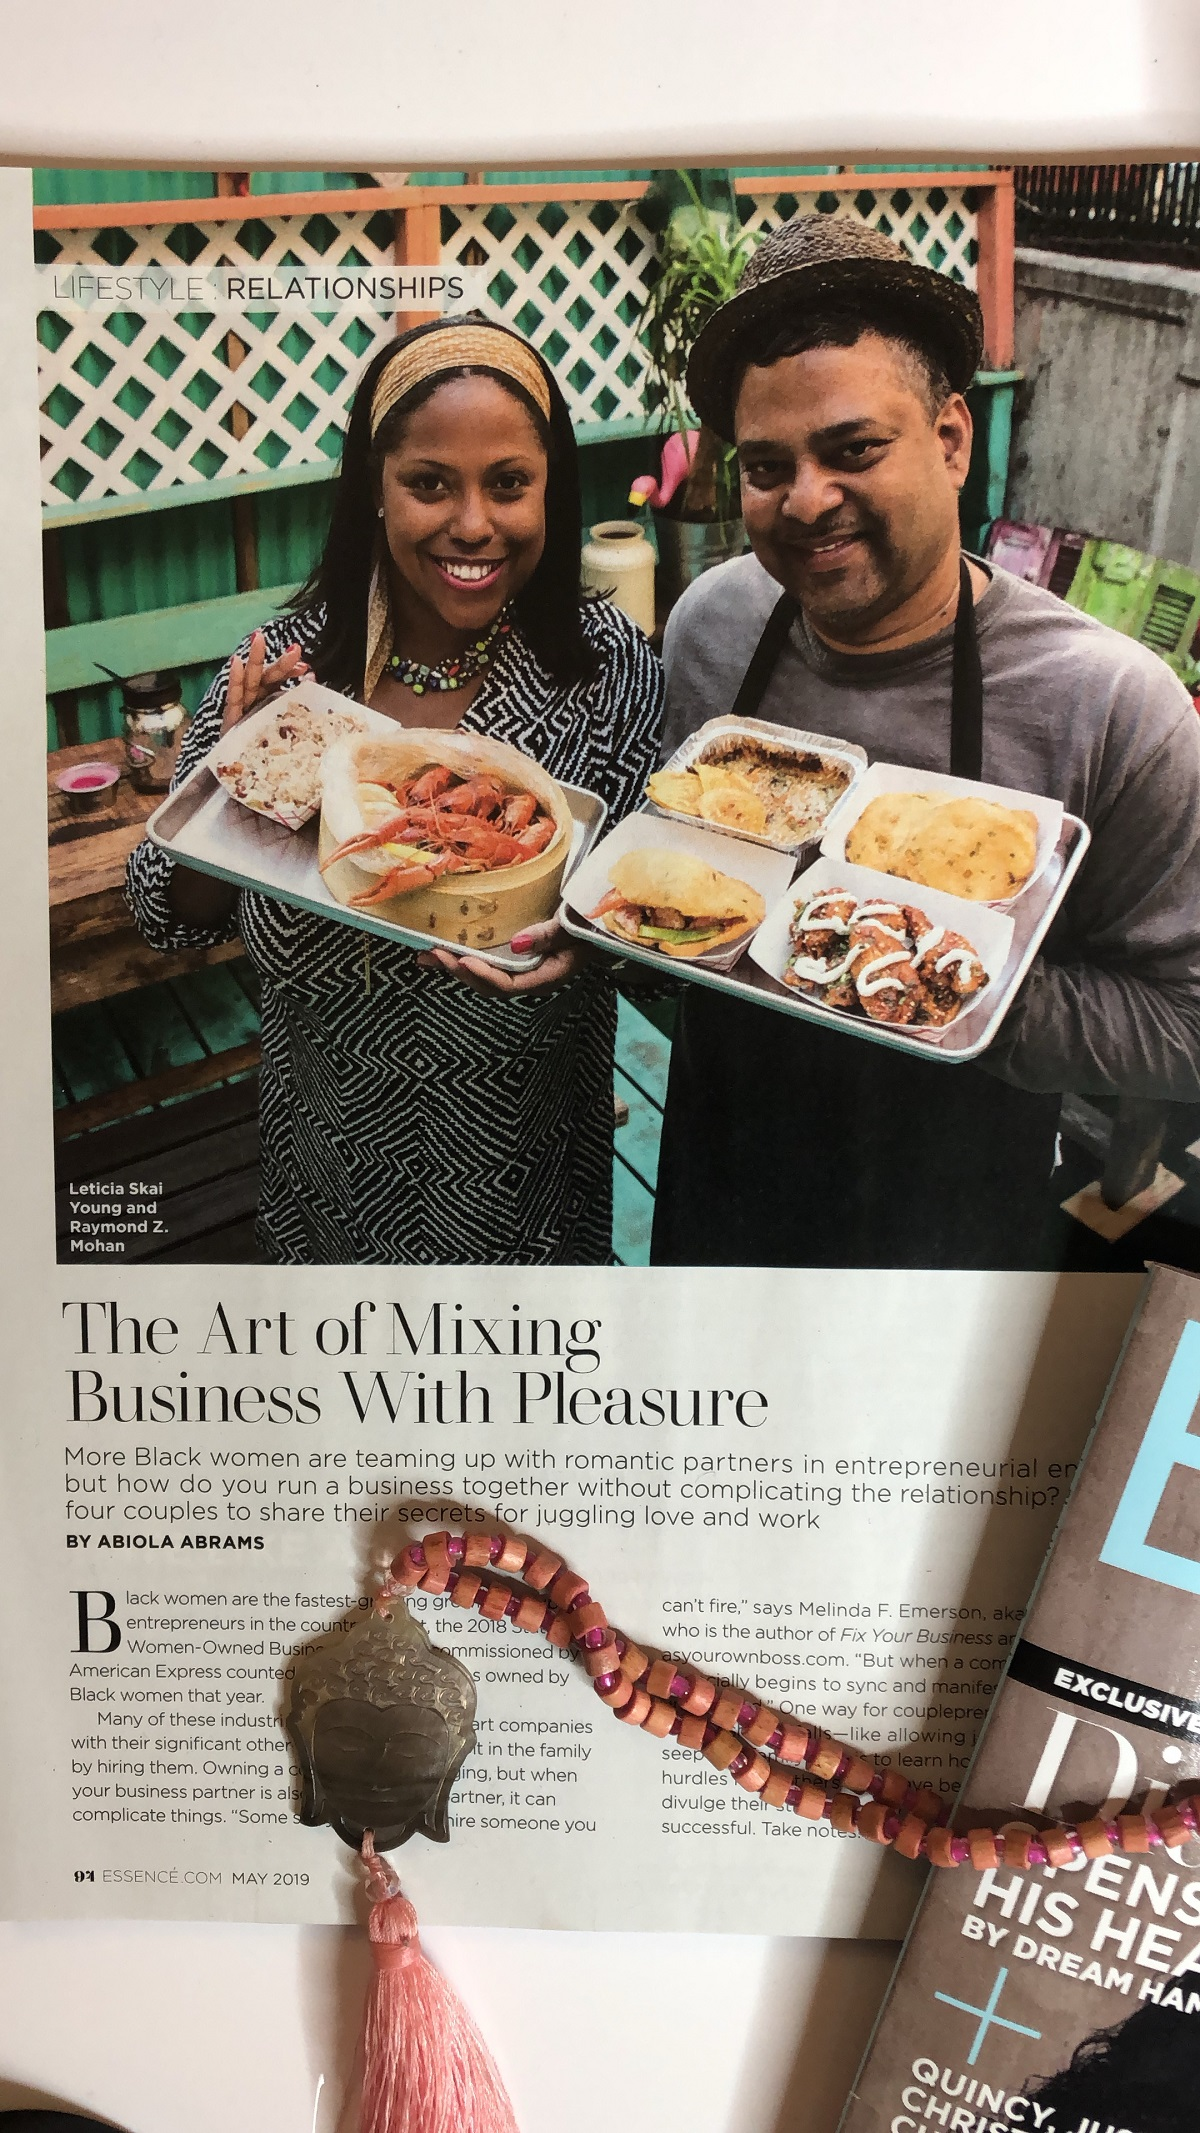 Meet Harlem Couplepreneurs Leticia Young and Raymond Mohan [Essence]